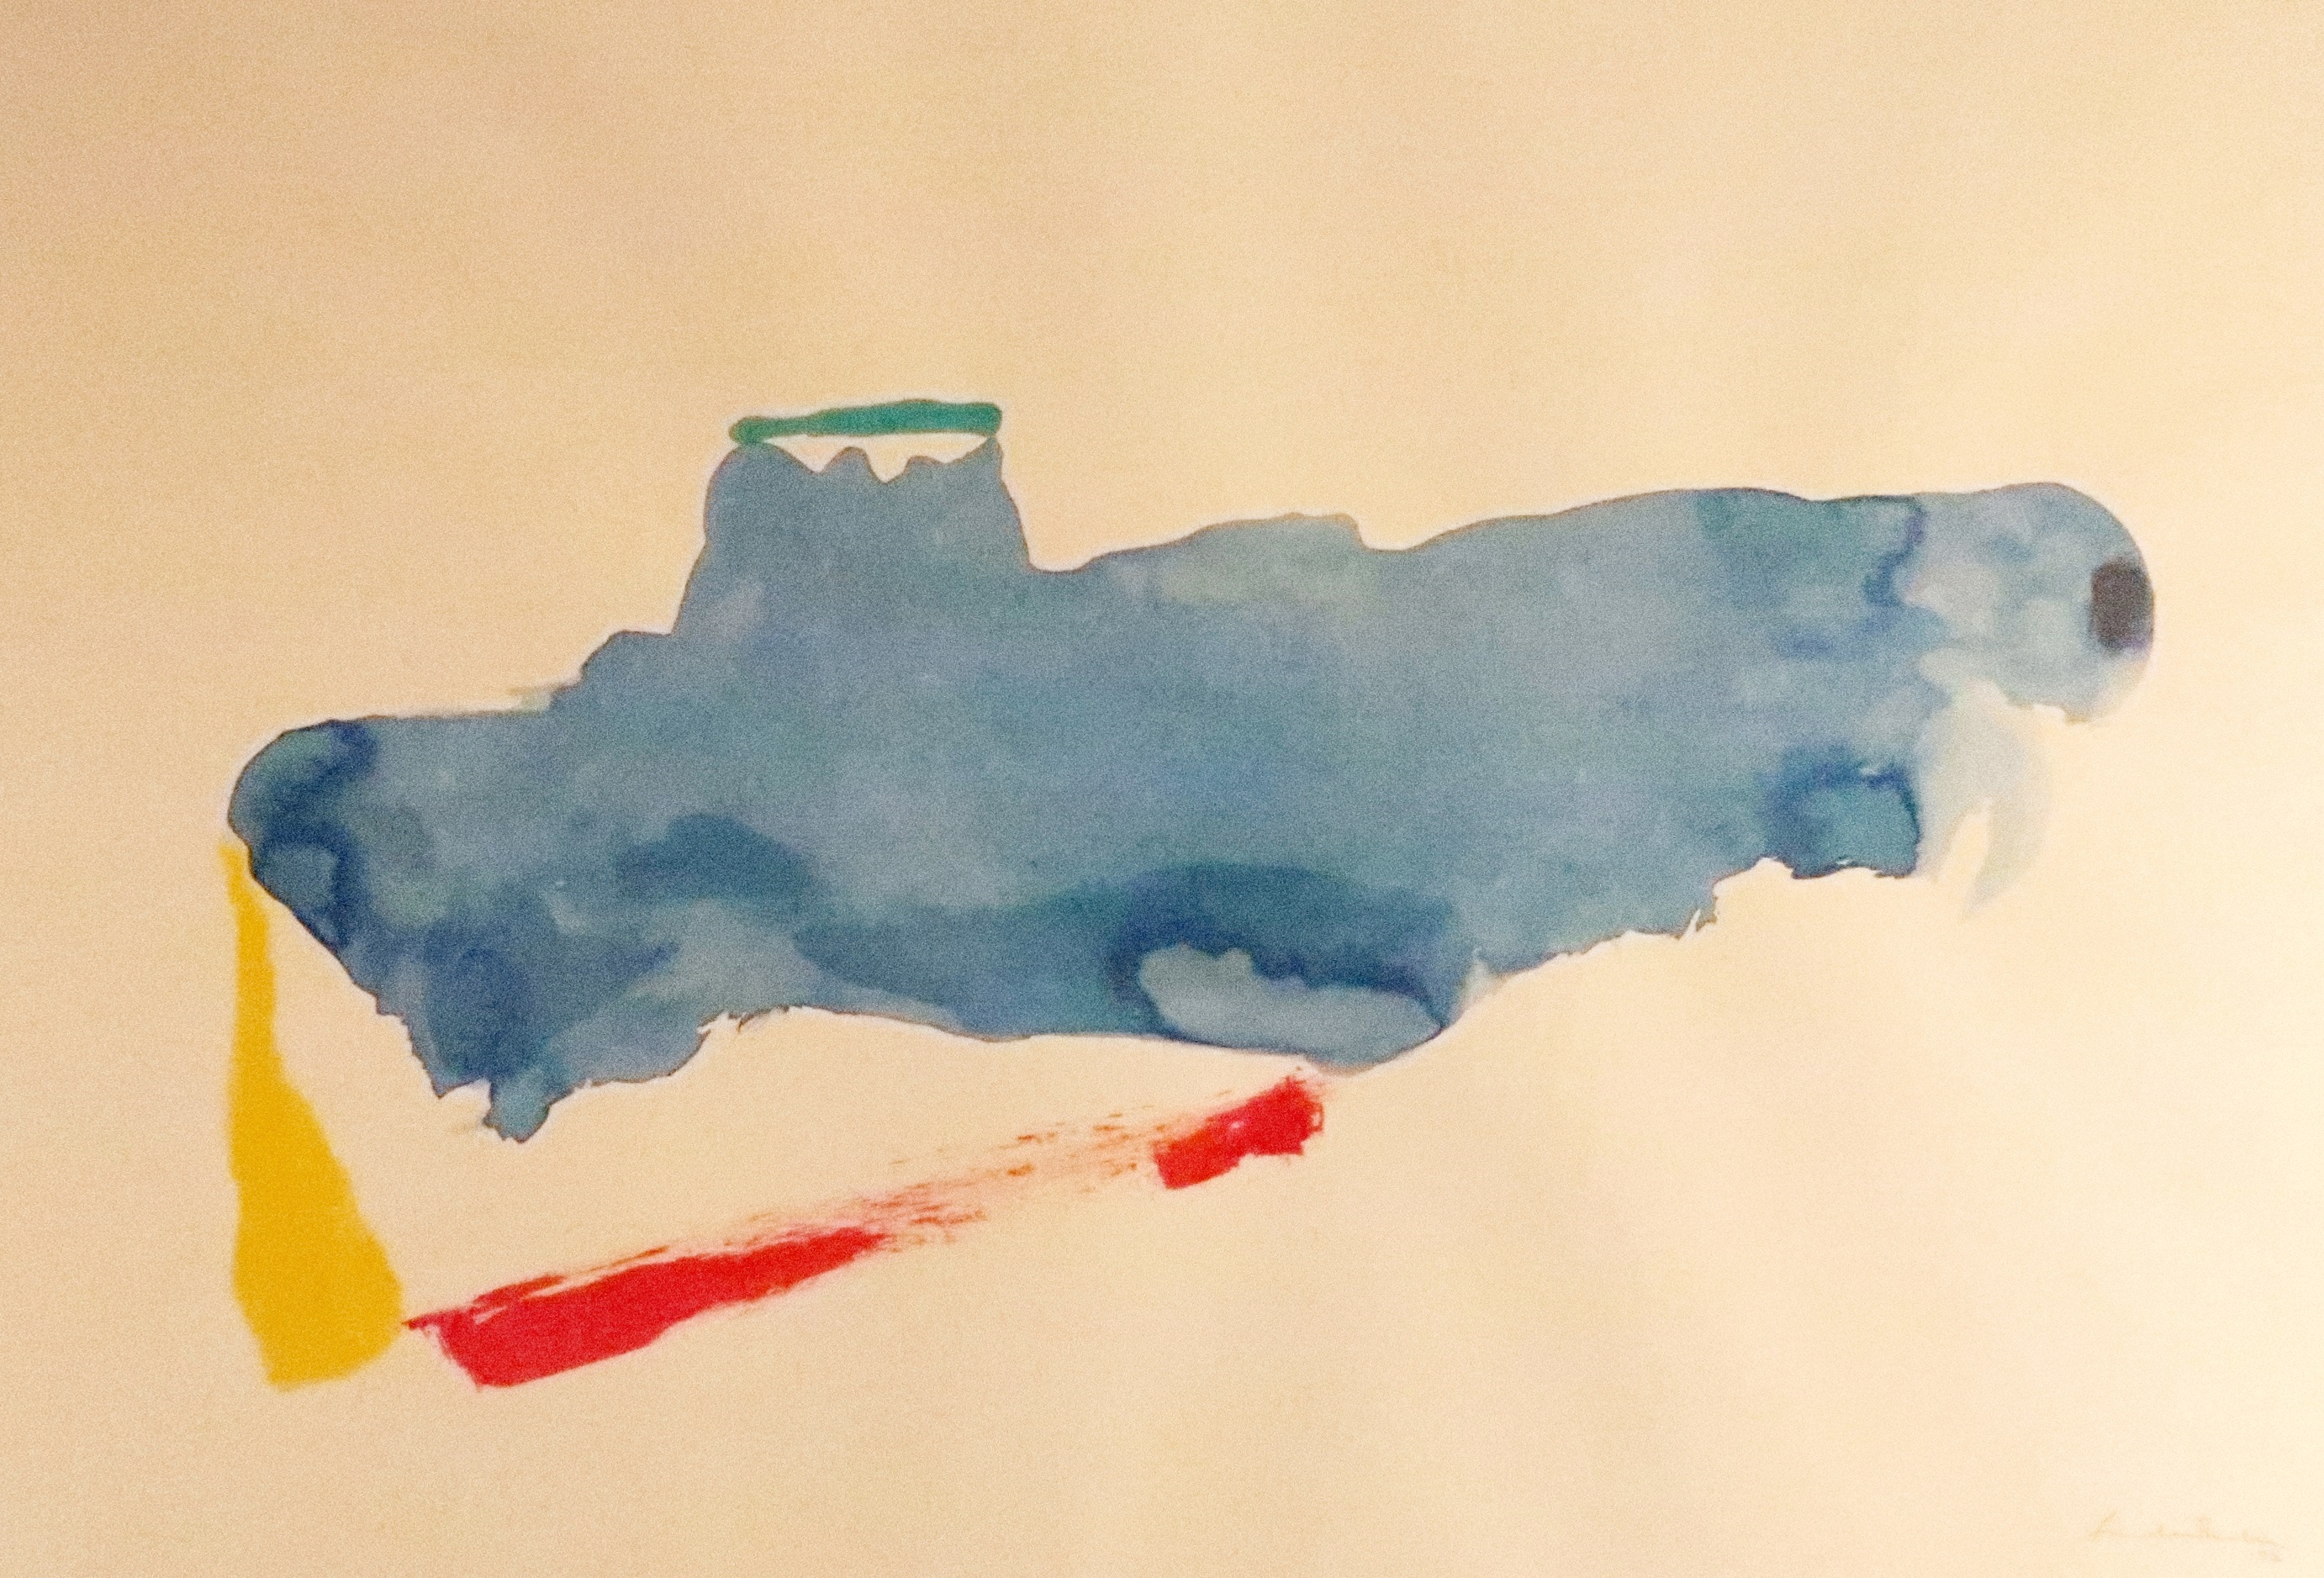 Helen Frankenthaler (1928-2011) New York VI. Sold For $40,000 At Capsule Gallery Auction